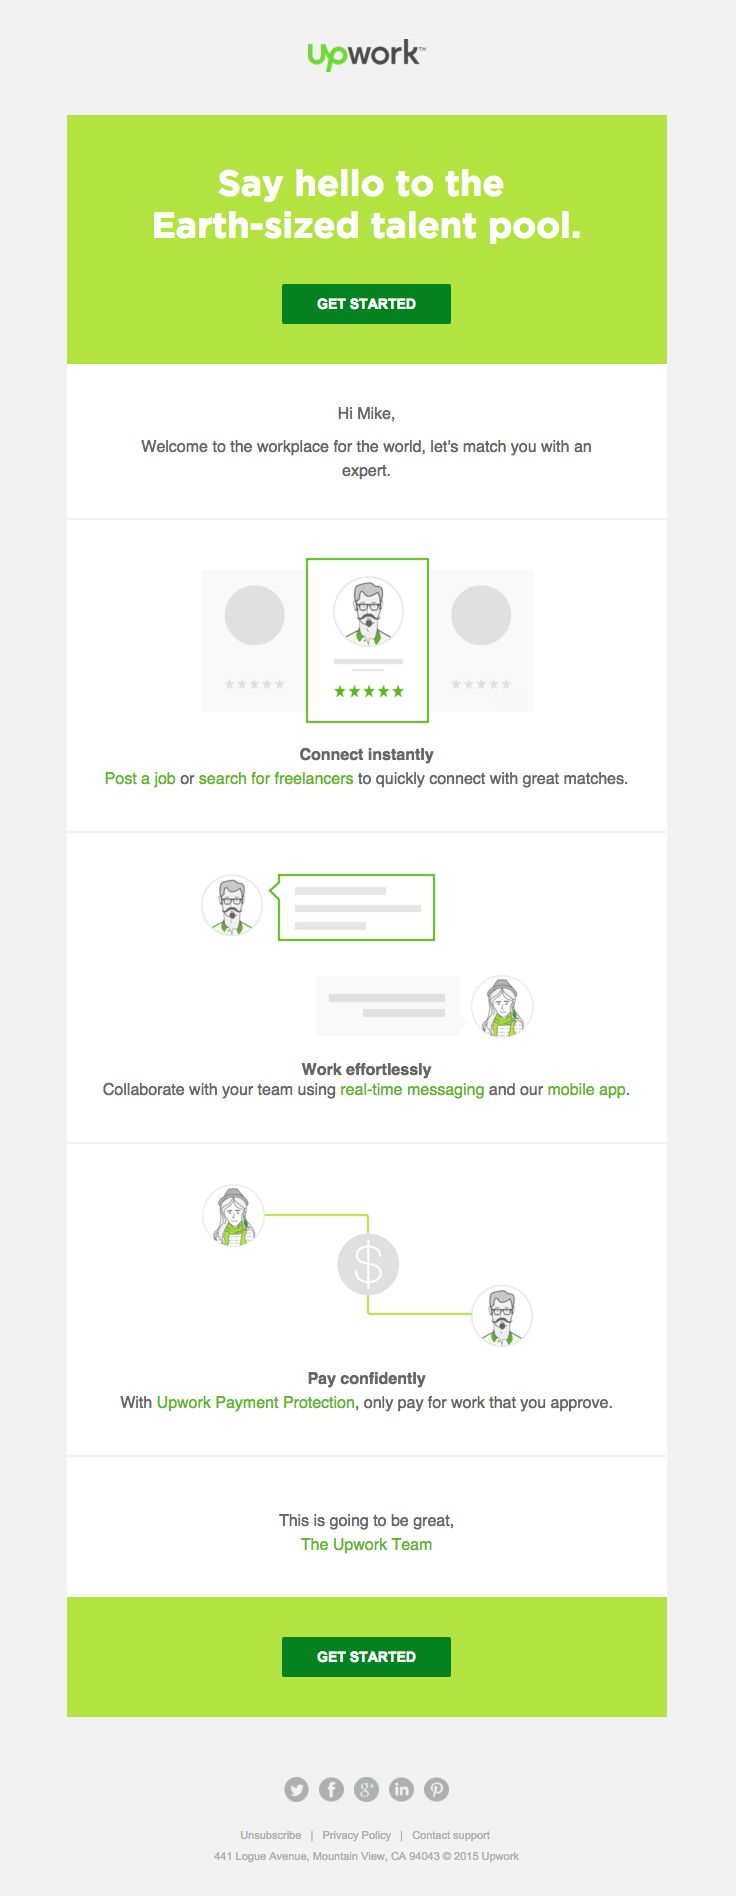 Customer Registration Form Template] Upwork Sent This Email With The ...